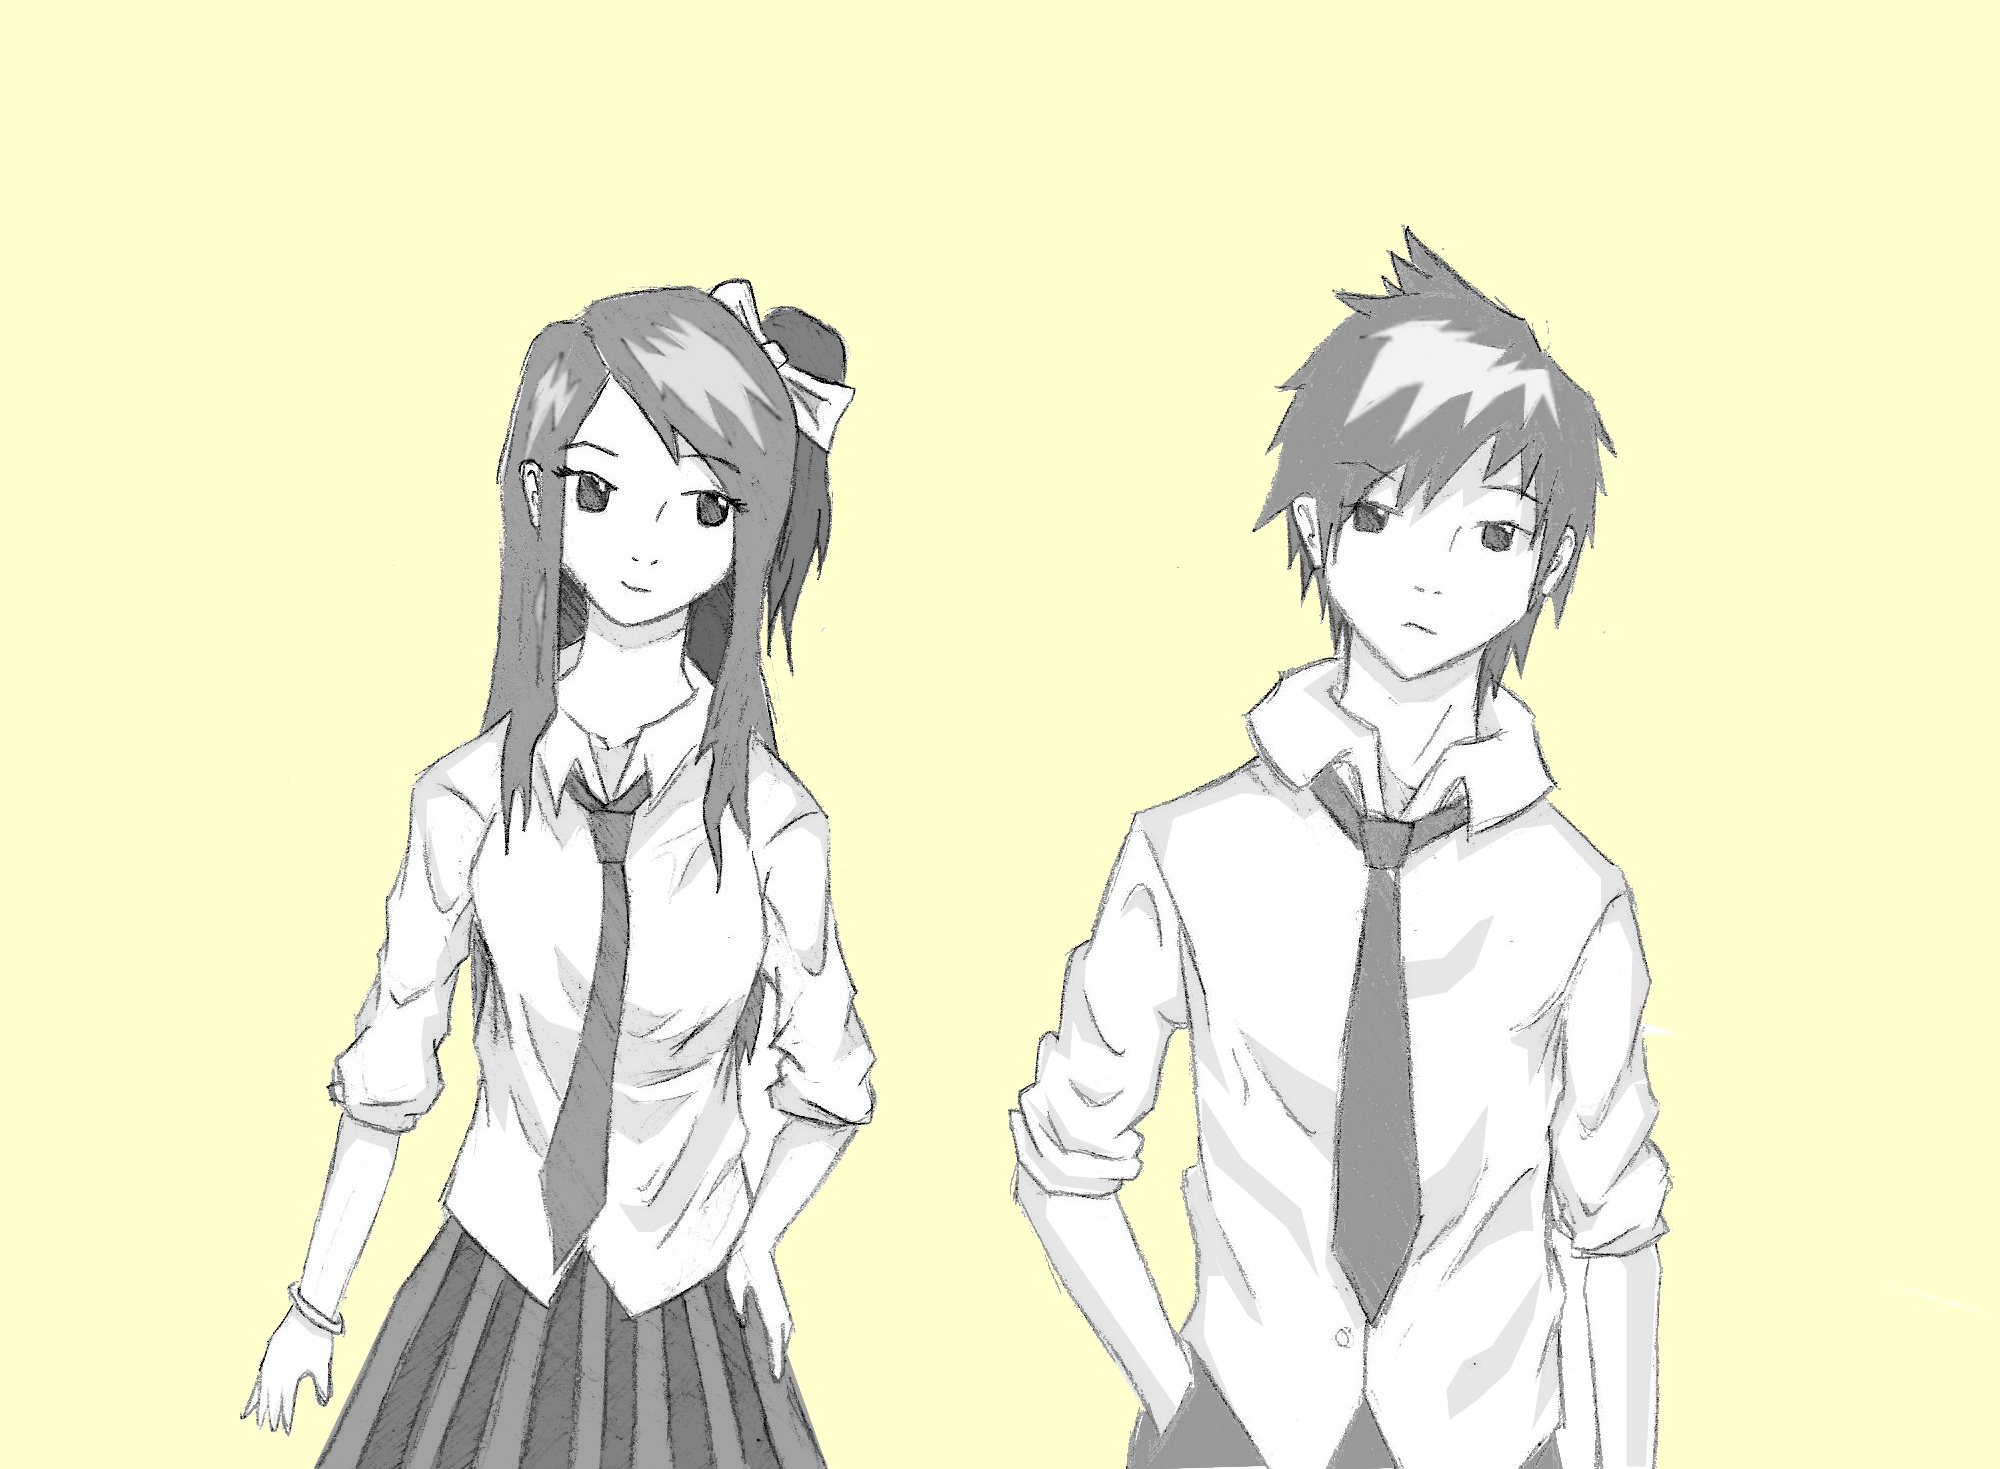 2000x1469 Anime Boy And Girl Drawing Anime Drawing Of A Boy And Girl Anime